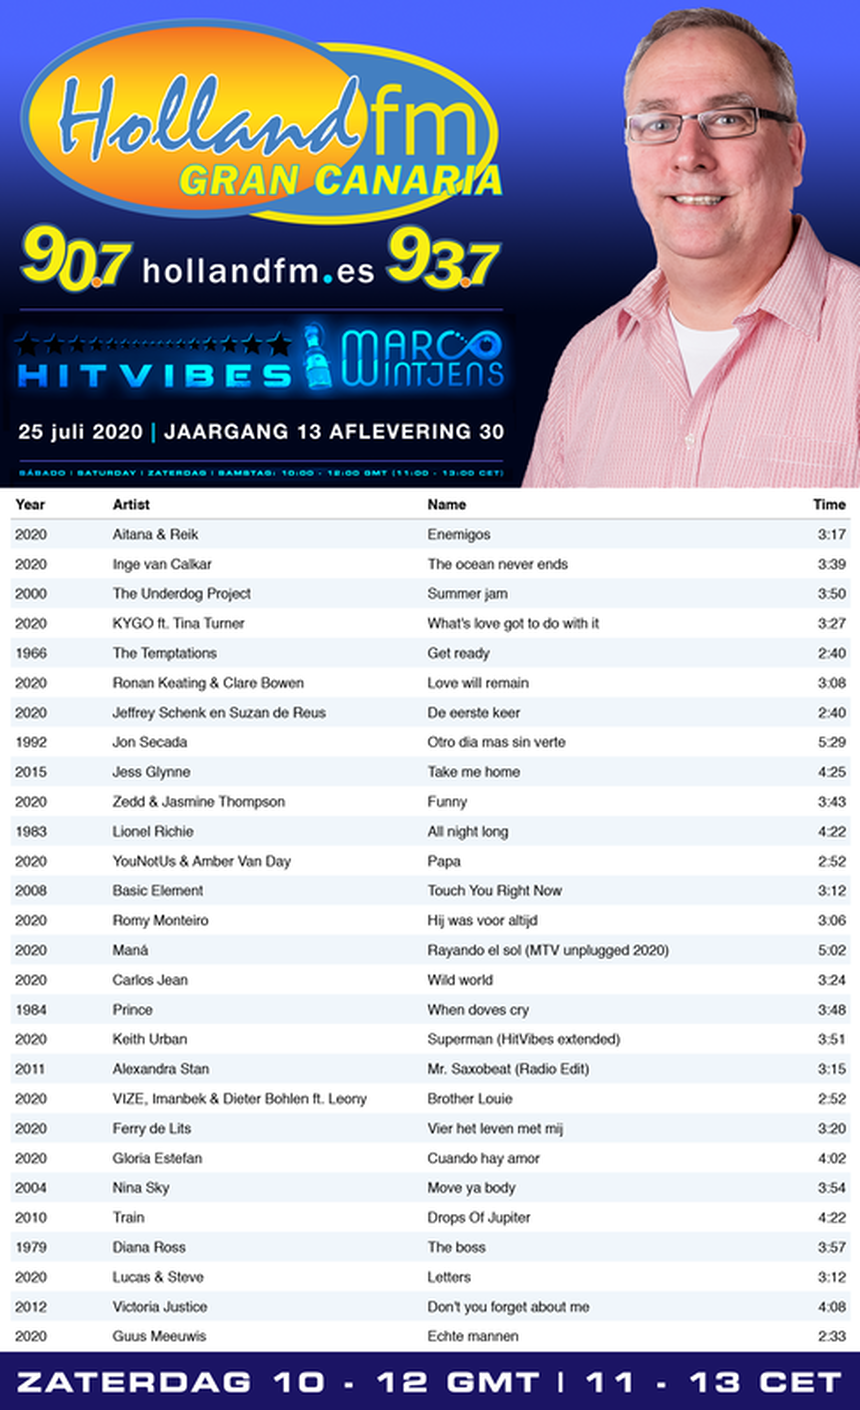 Playlist, HitVibes, Gran Canaria, Marco Wintjens, Holland FM